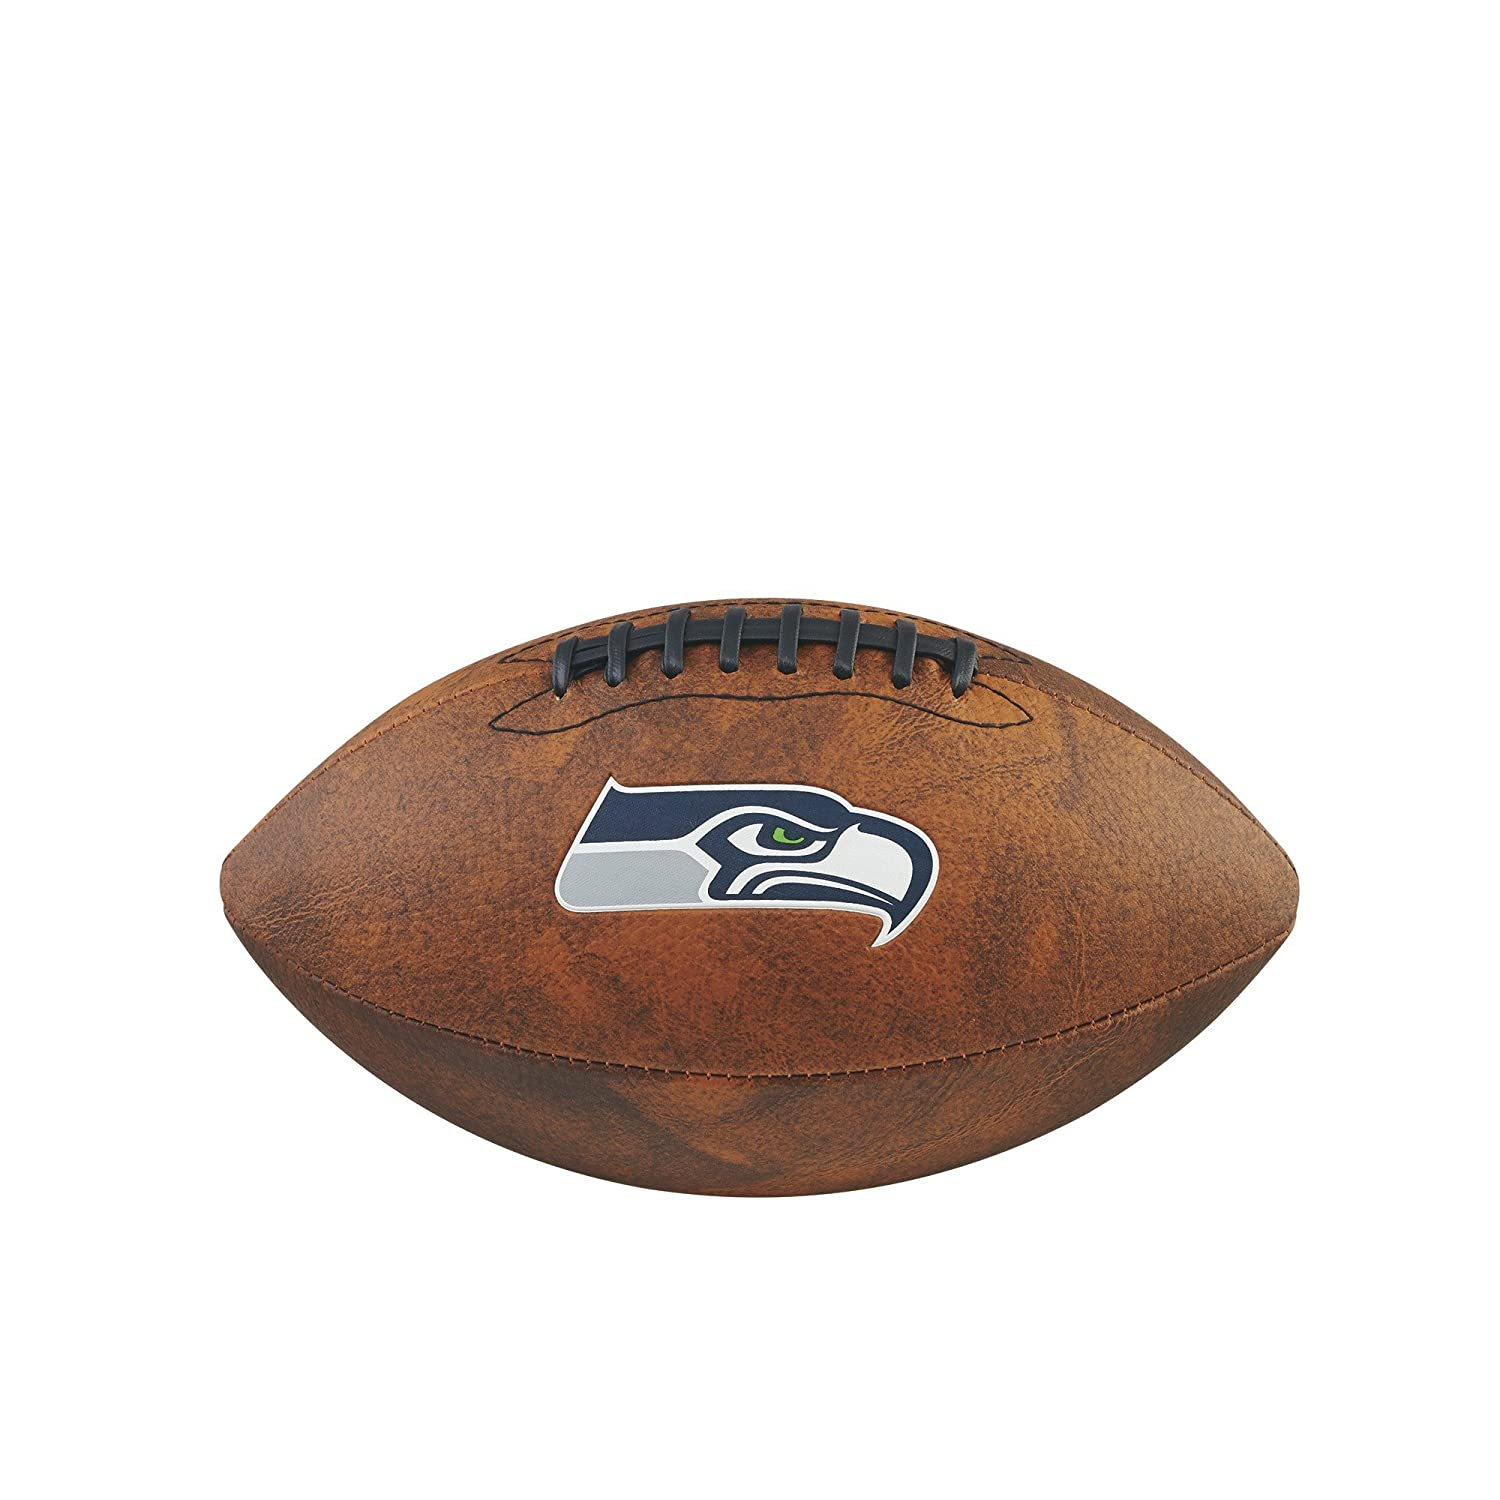 Game Master NFL Seattle Seahawks Junior Wilson Throwback Football, 11-Inch, Brown Gulf Coast Sales WTF1539XBSE